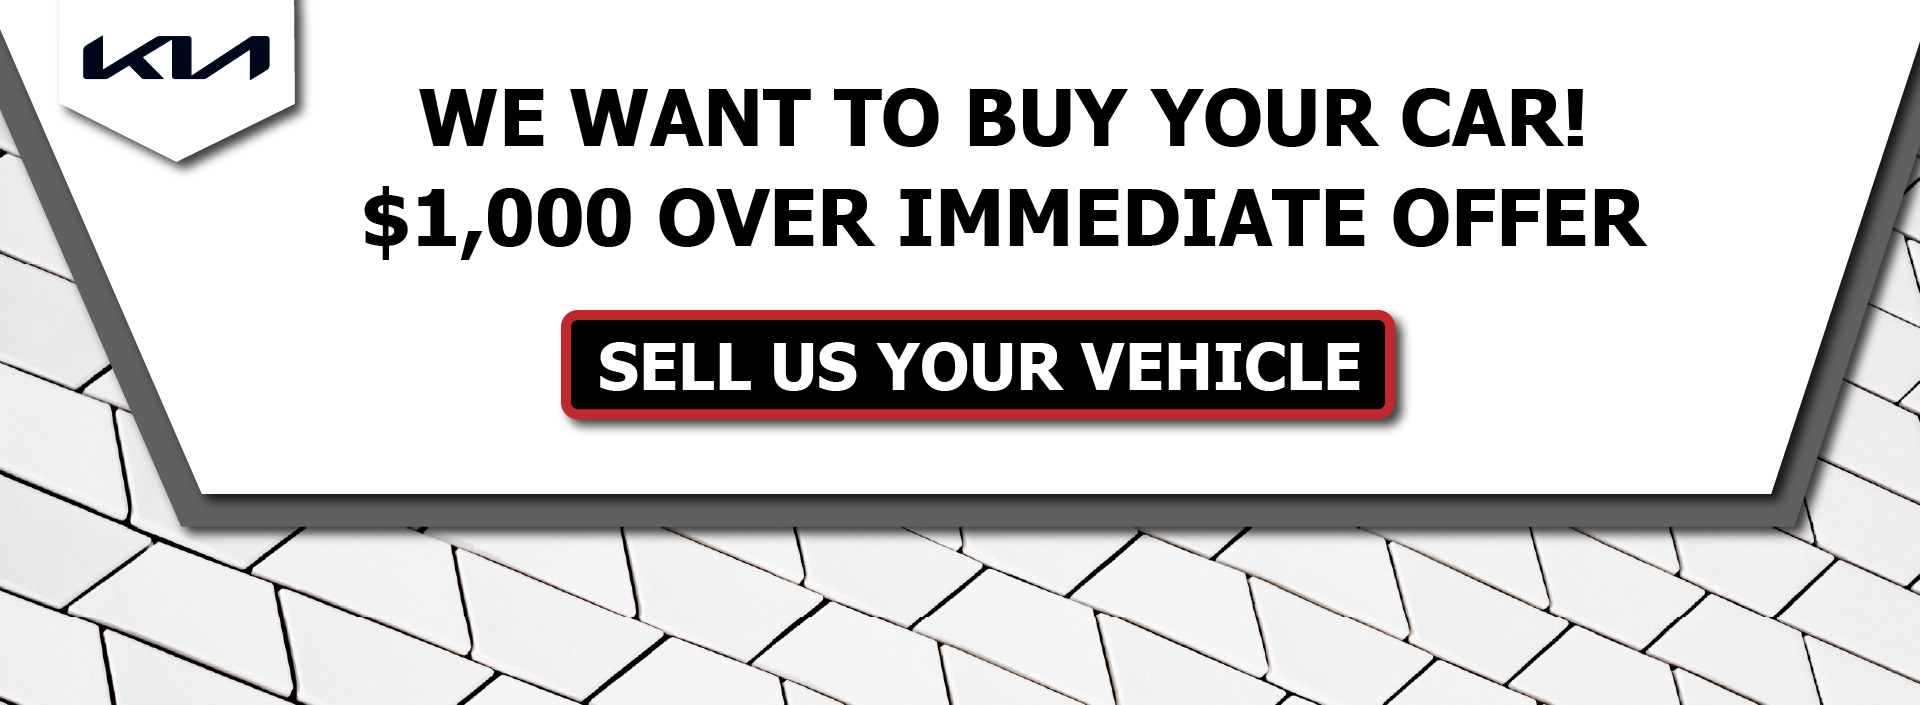 We Want to Buy Your Car_Kia NEW LOGO